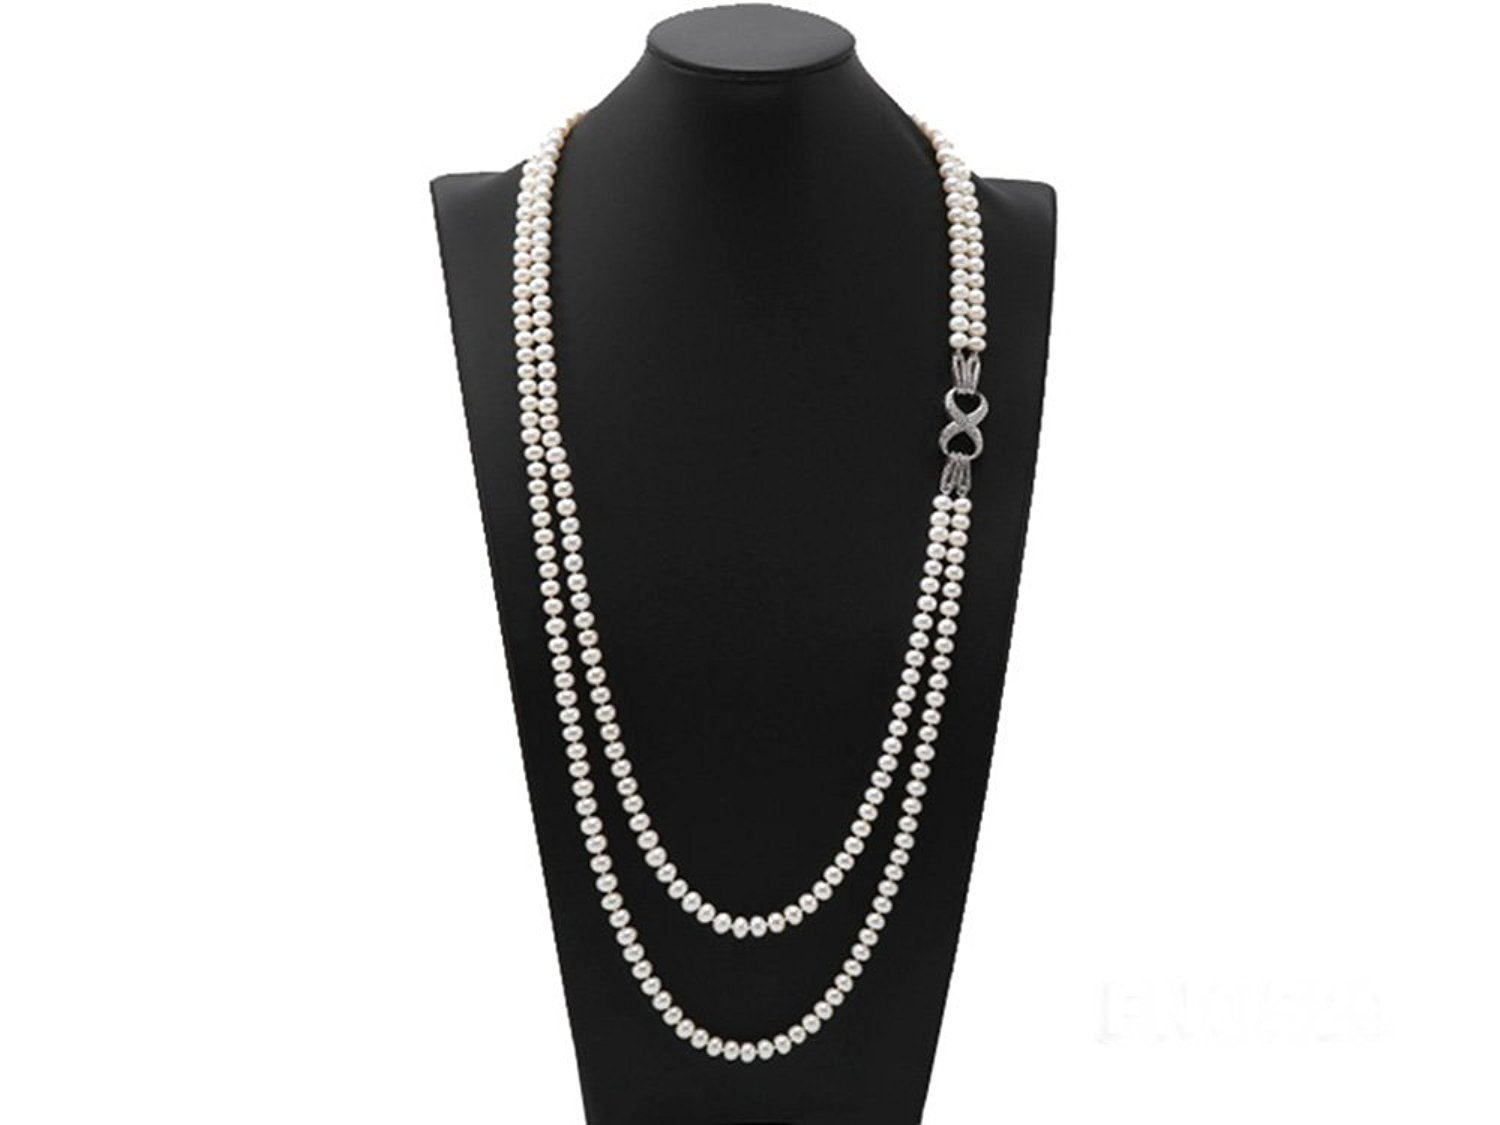 JYX High Grade7.5-8mm Two-Strand Freshwater Pearl Opera Necklace